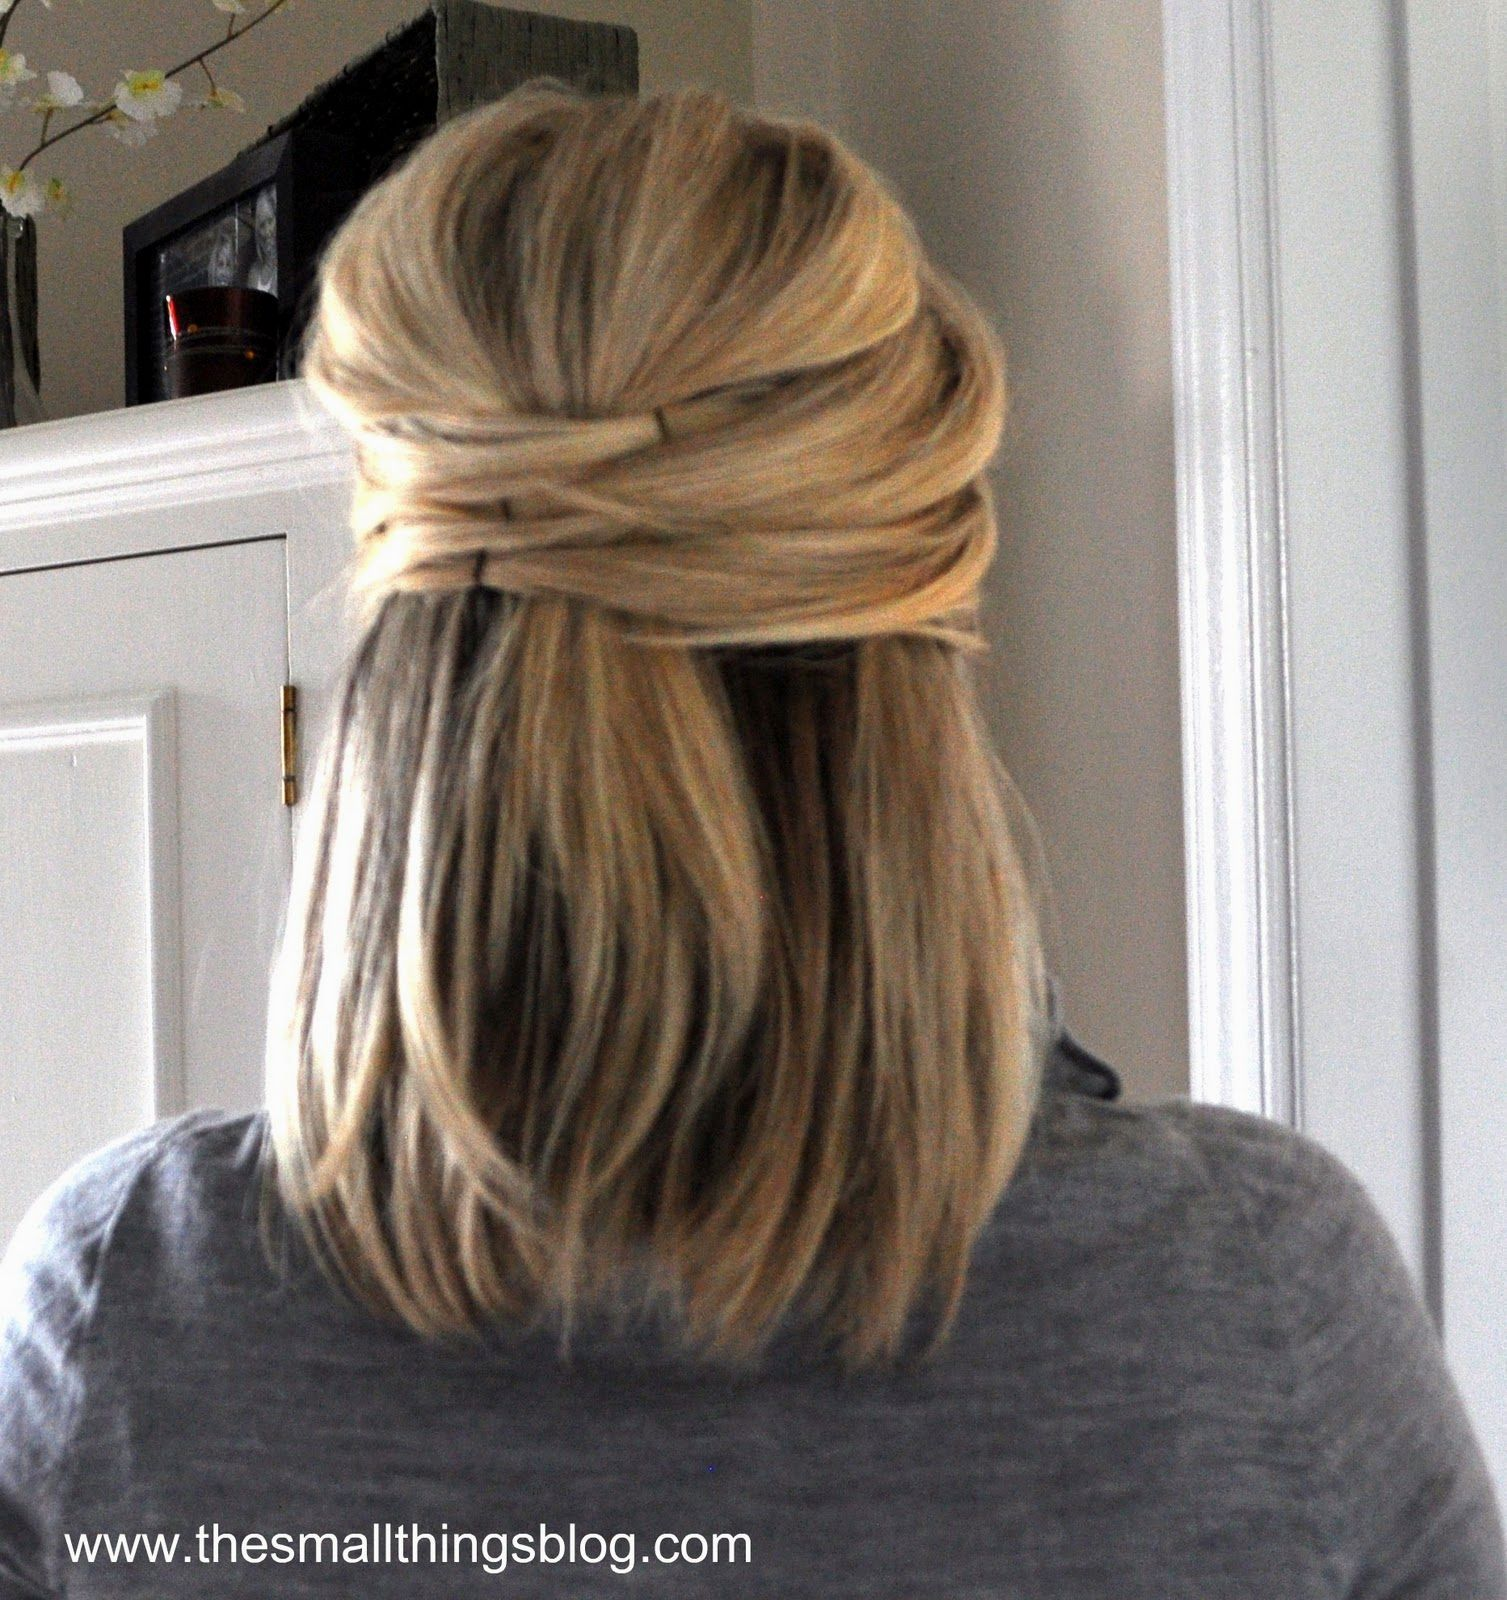 Tagged: simple wedding hairstyles for shoulder length hair